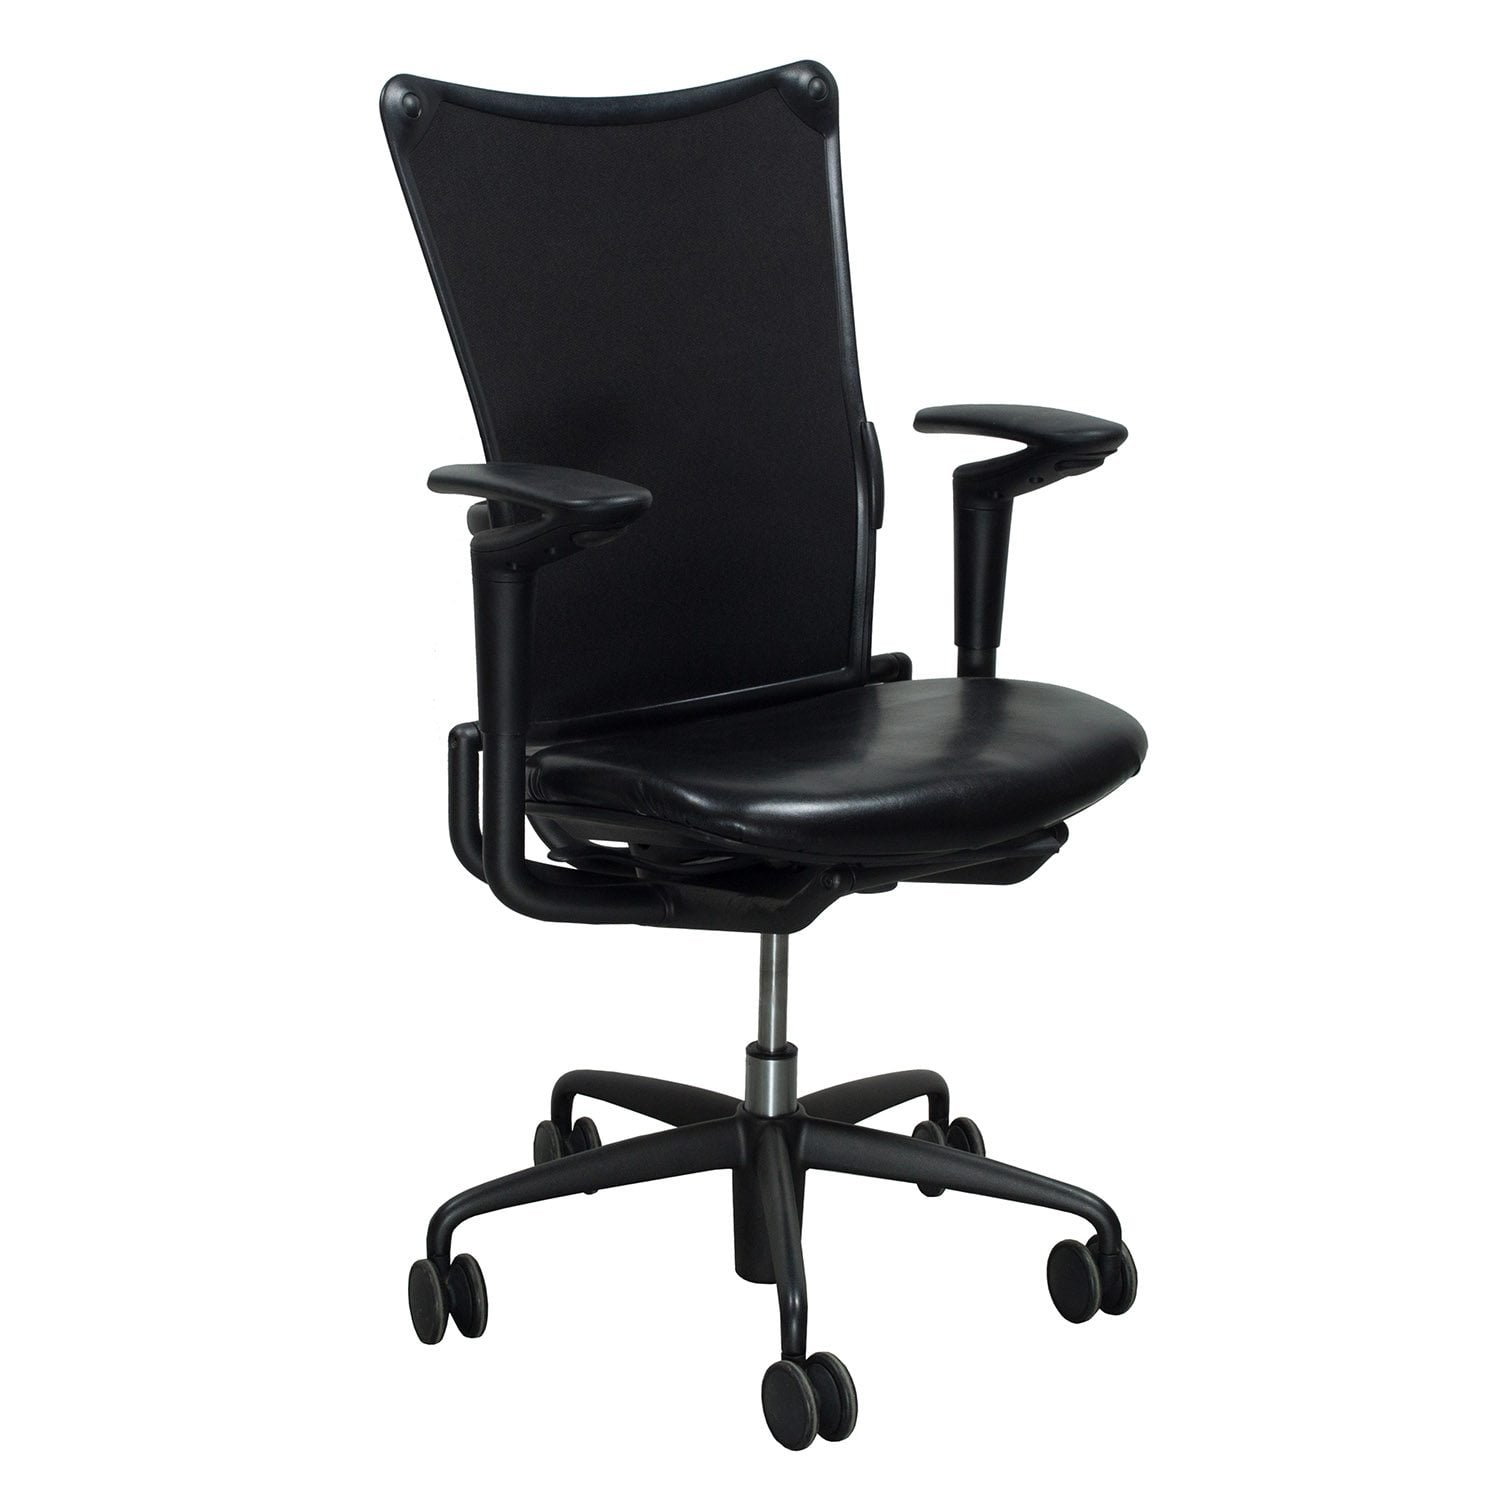 Allsteel 19 Used Task Chair with Leather Seat Black